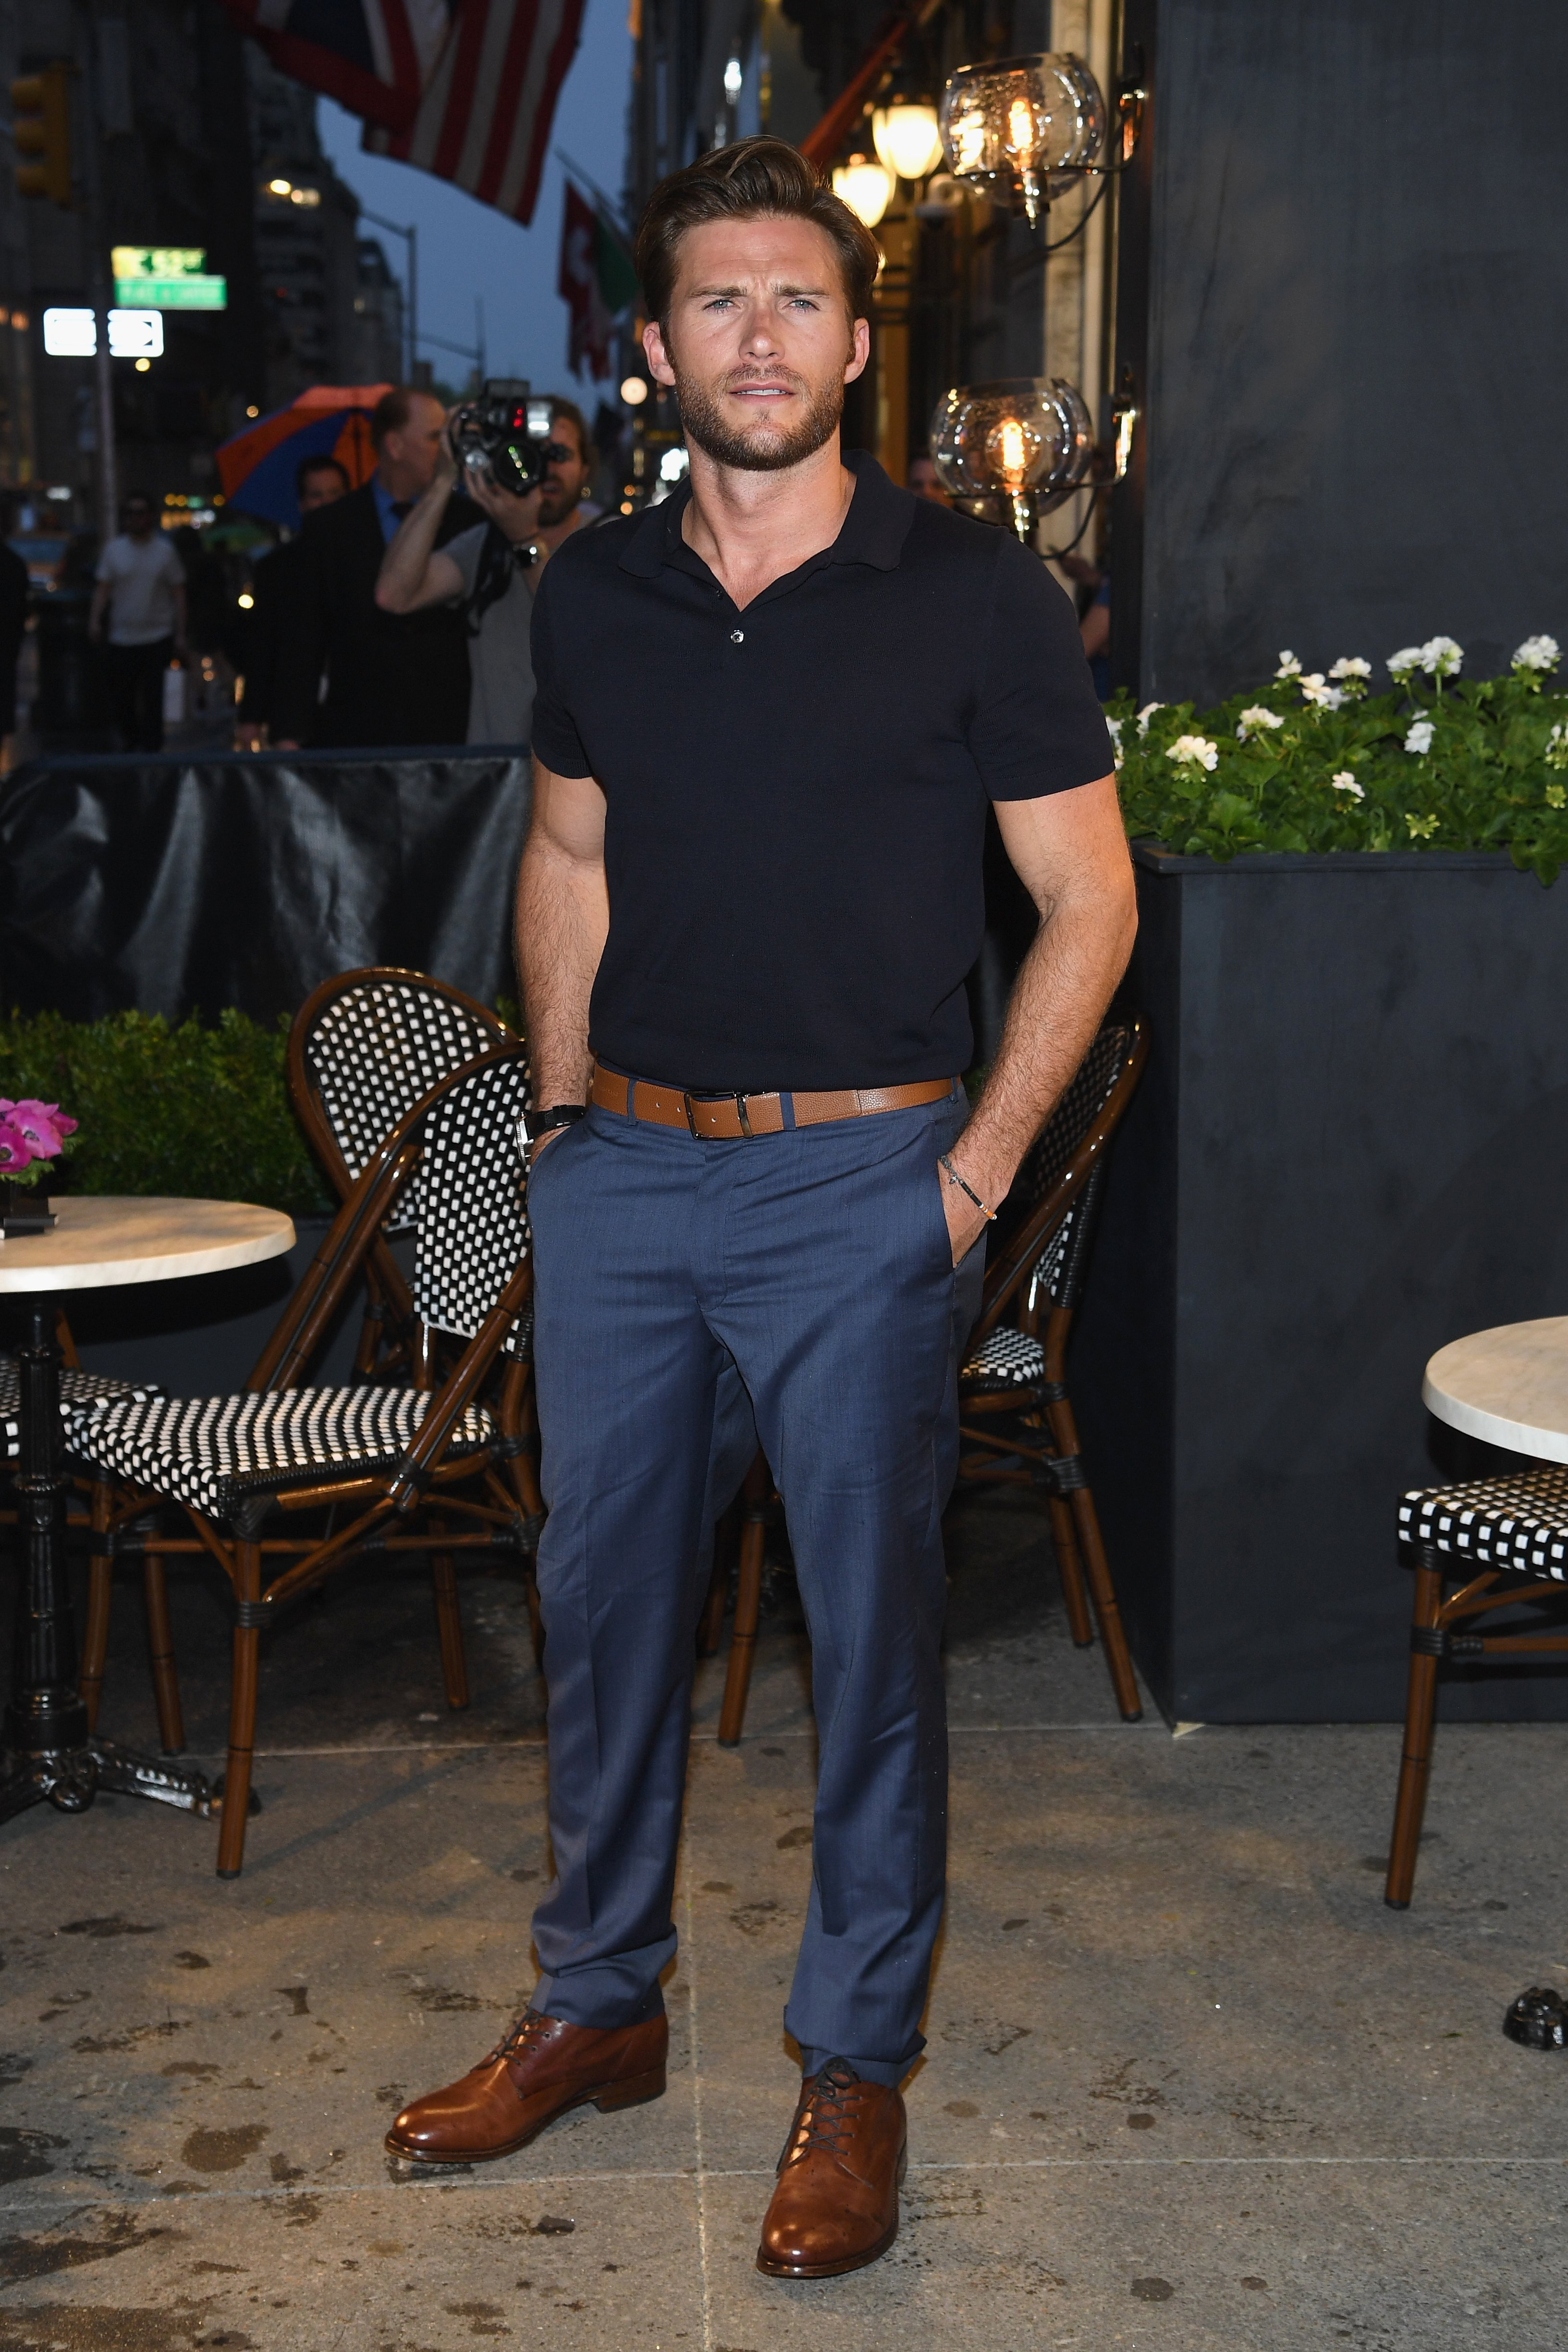 Scott Eastwood on May 3, 2018 in New York City | Photo: Getty Images